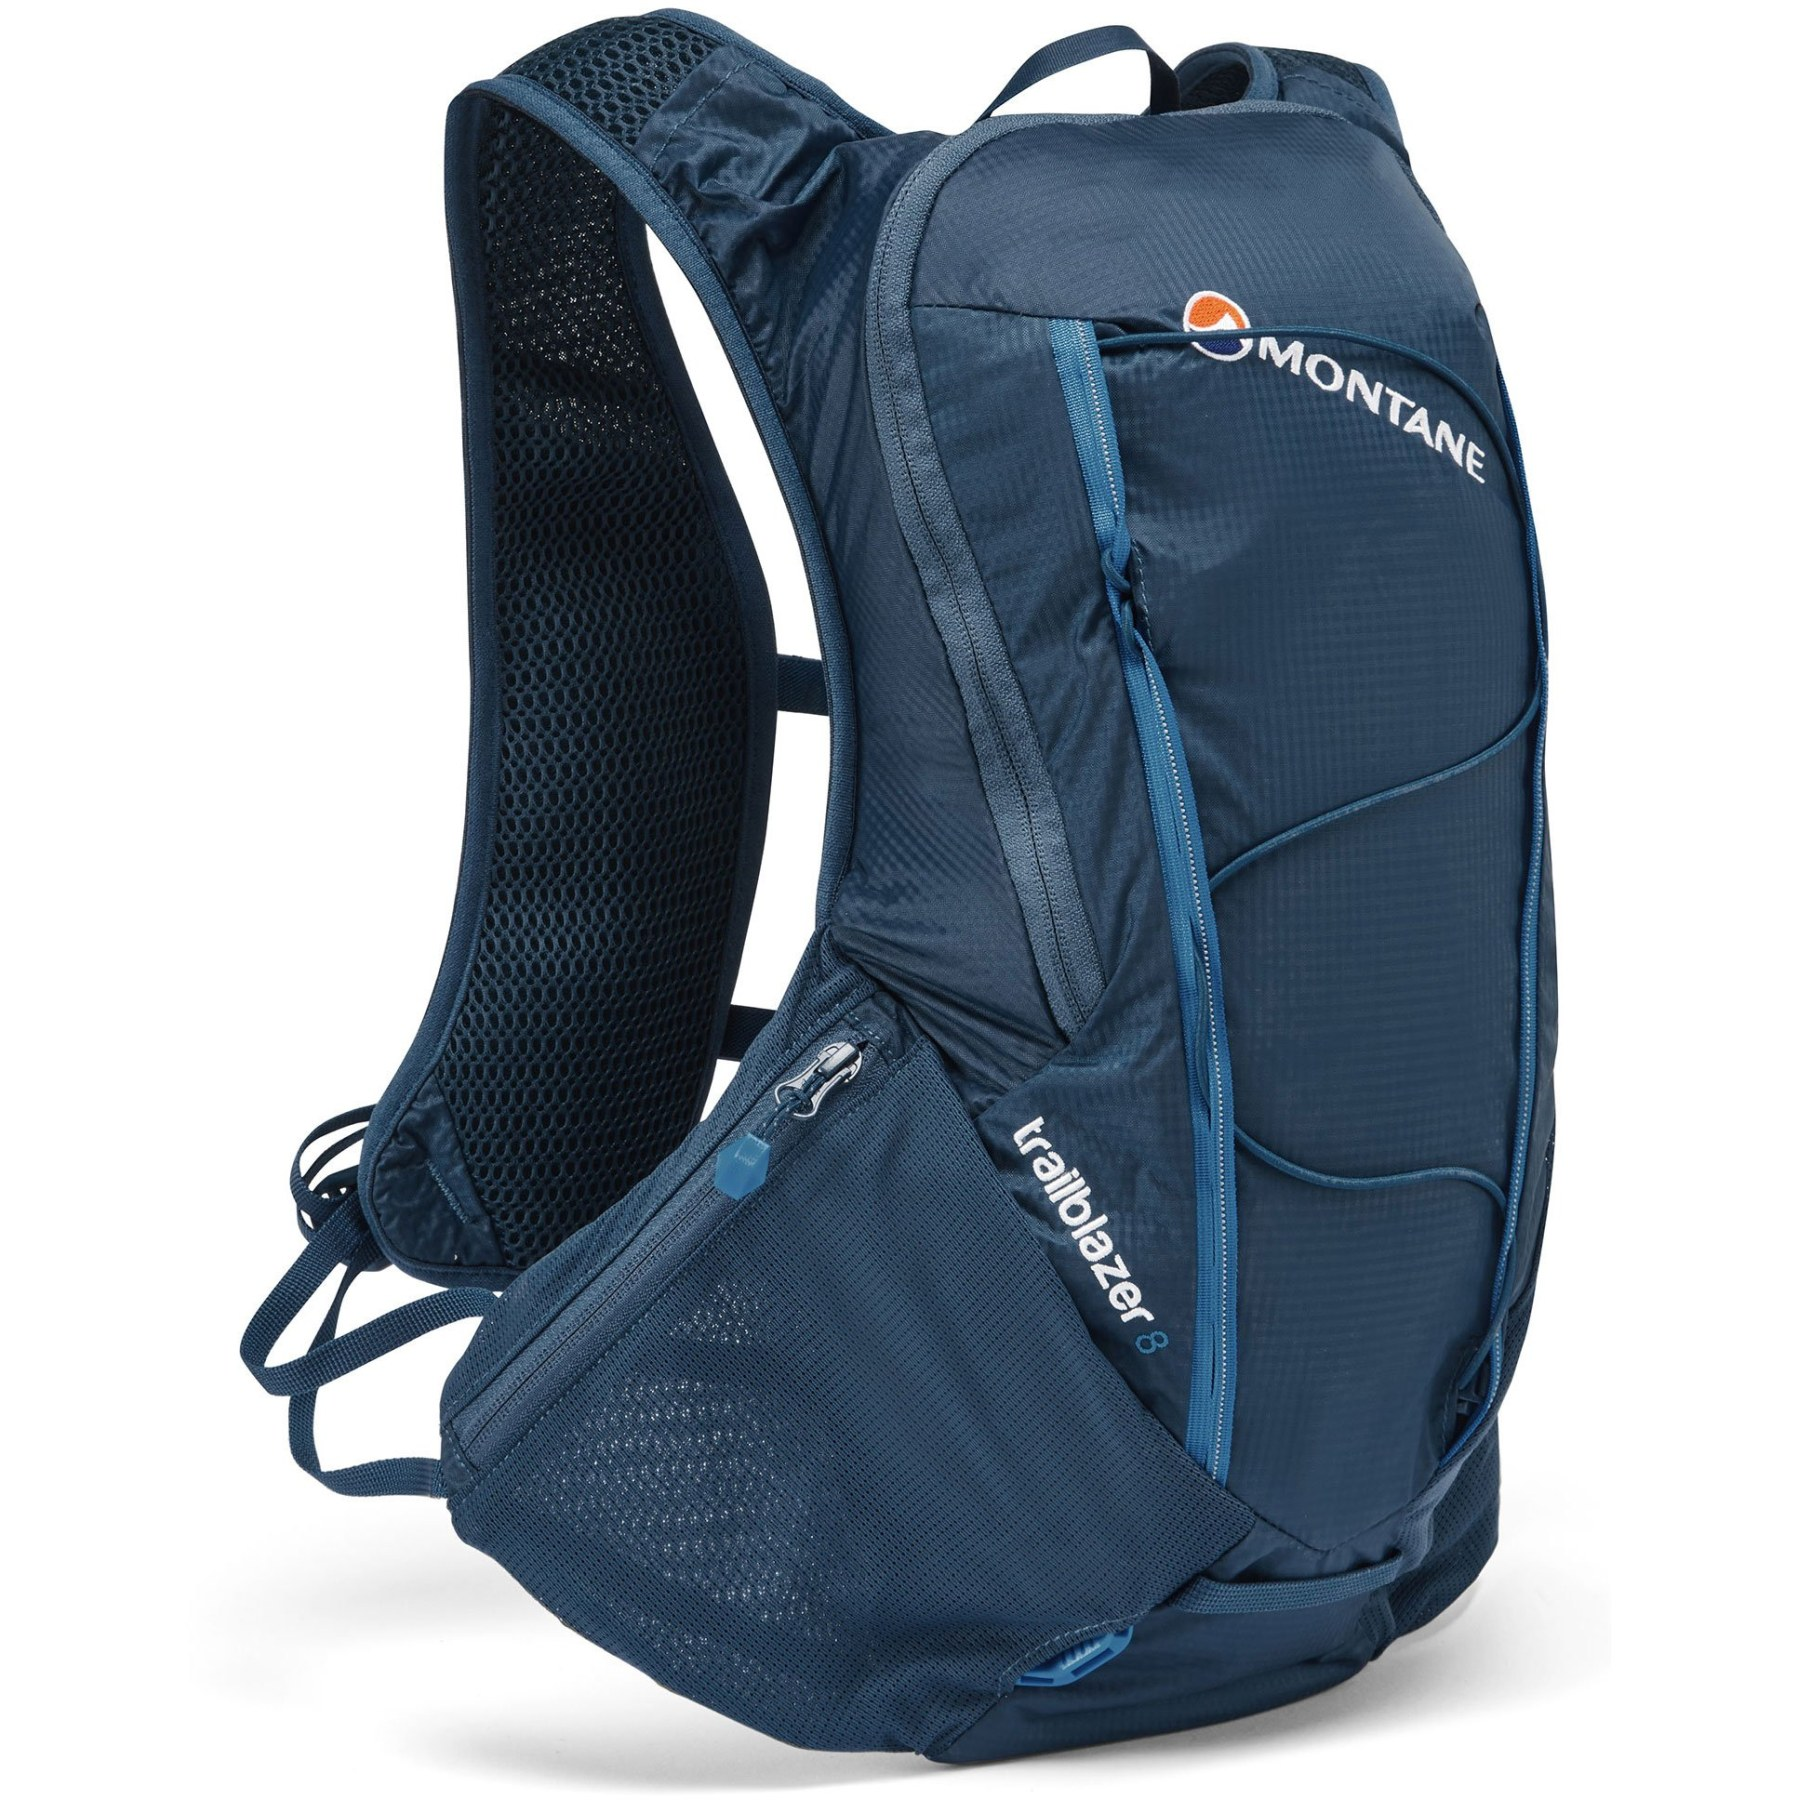 Picture of Montane Trailblazer 8 Backpack - Narwhal Blue